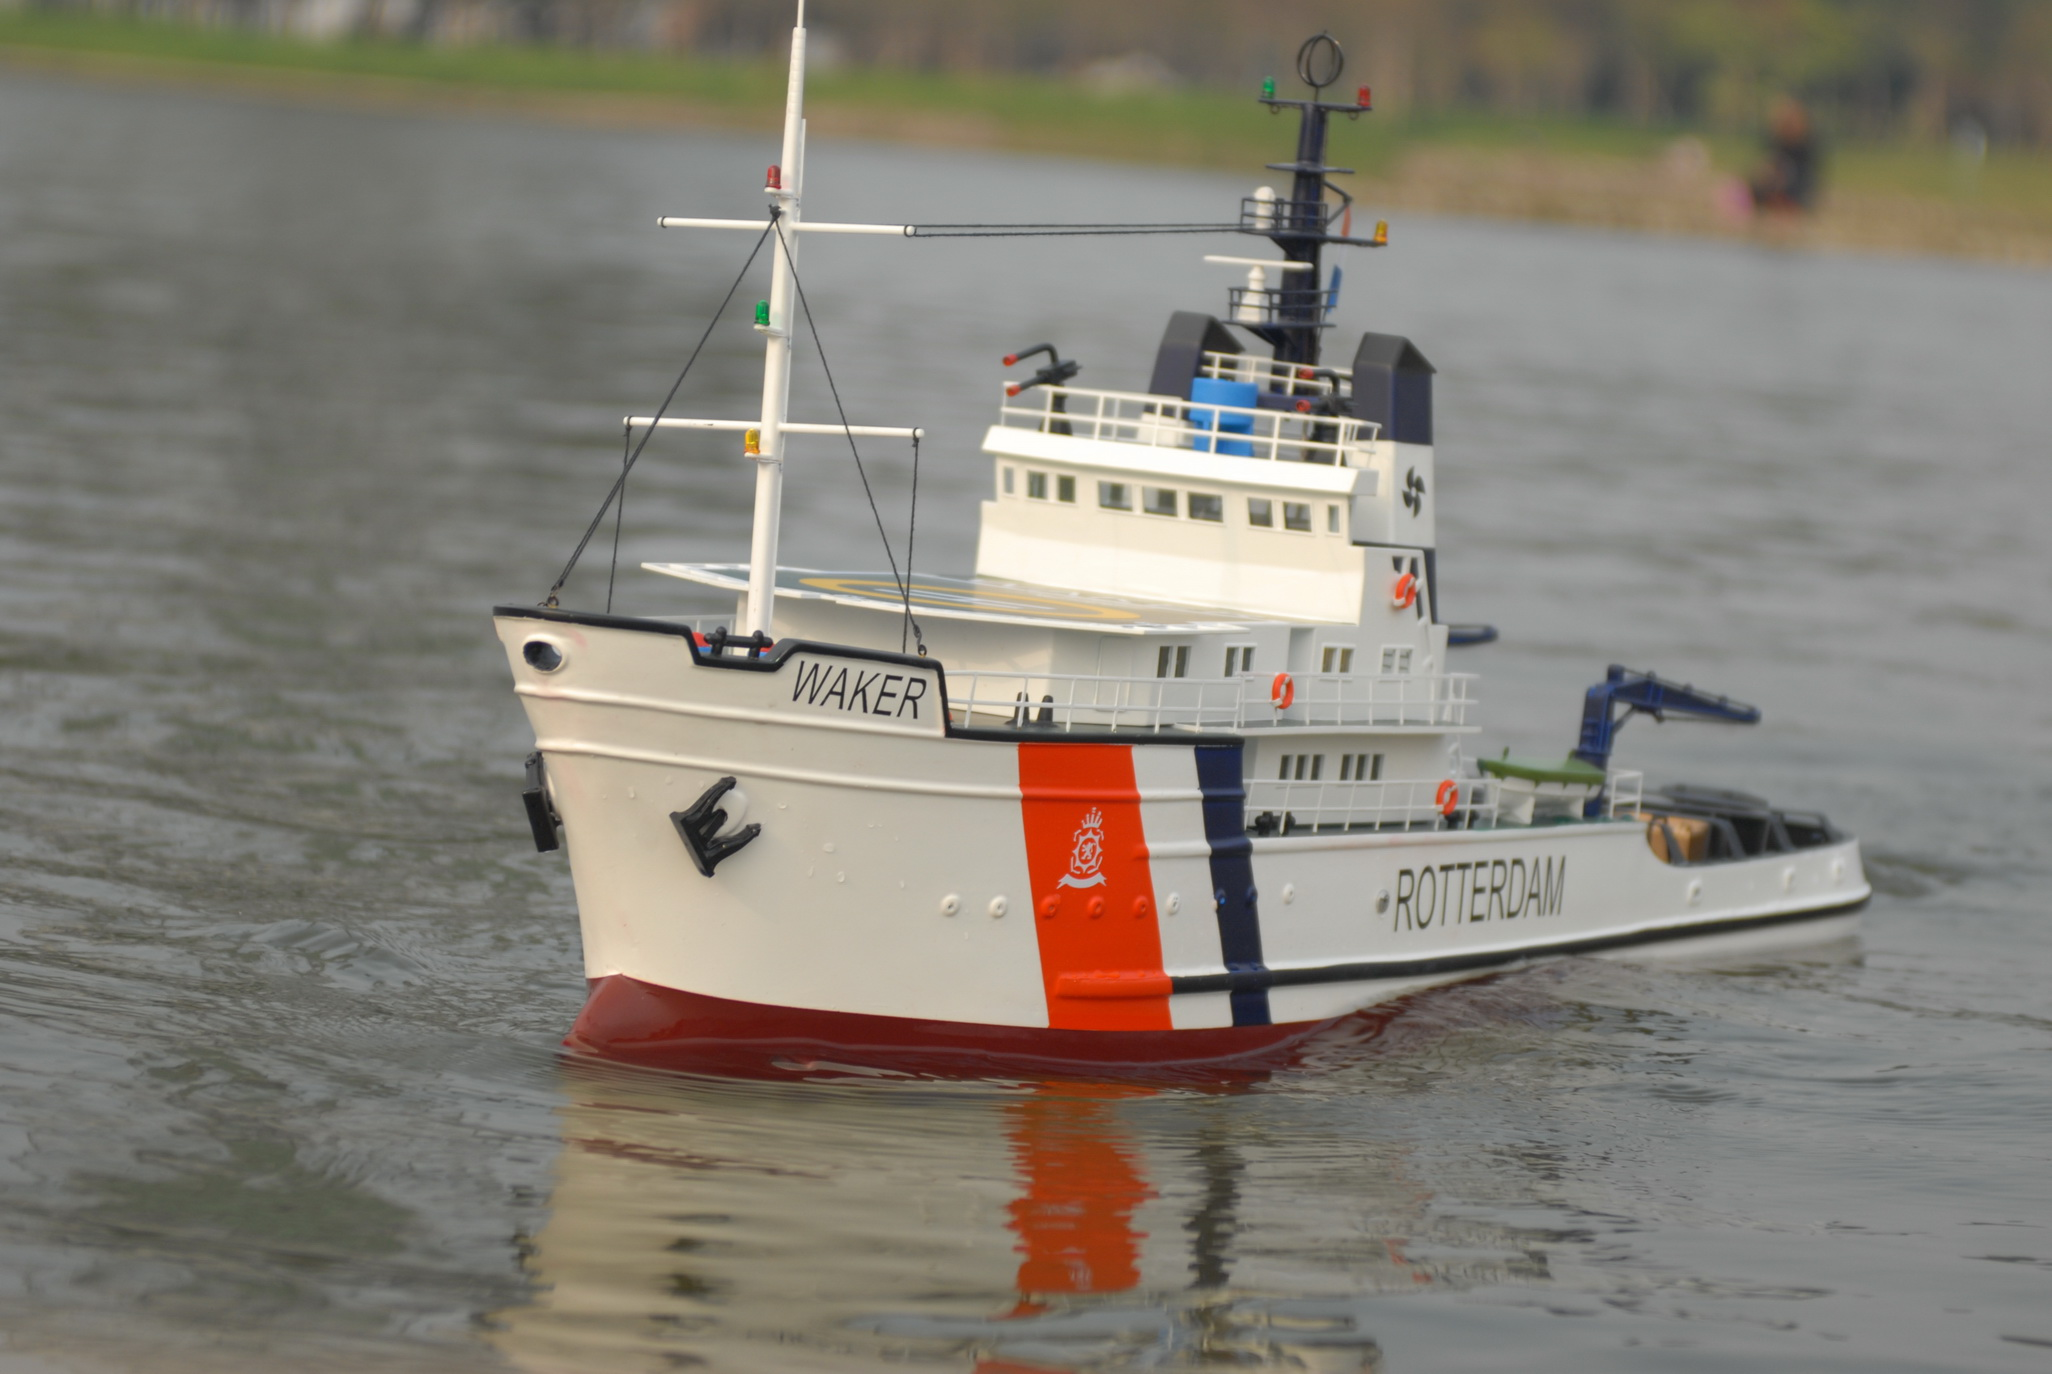 RC EMERGENCY TOW VESSEL (ETV) WALKER | The Scale Modeler - Trains, Boats, Planes, Ships